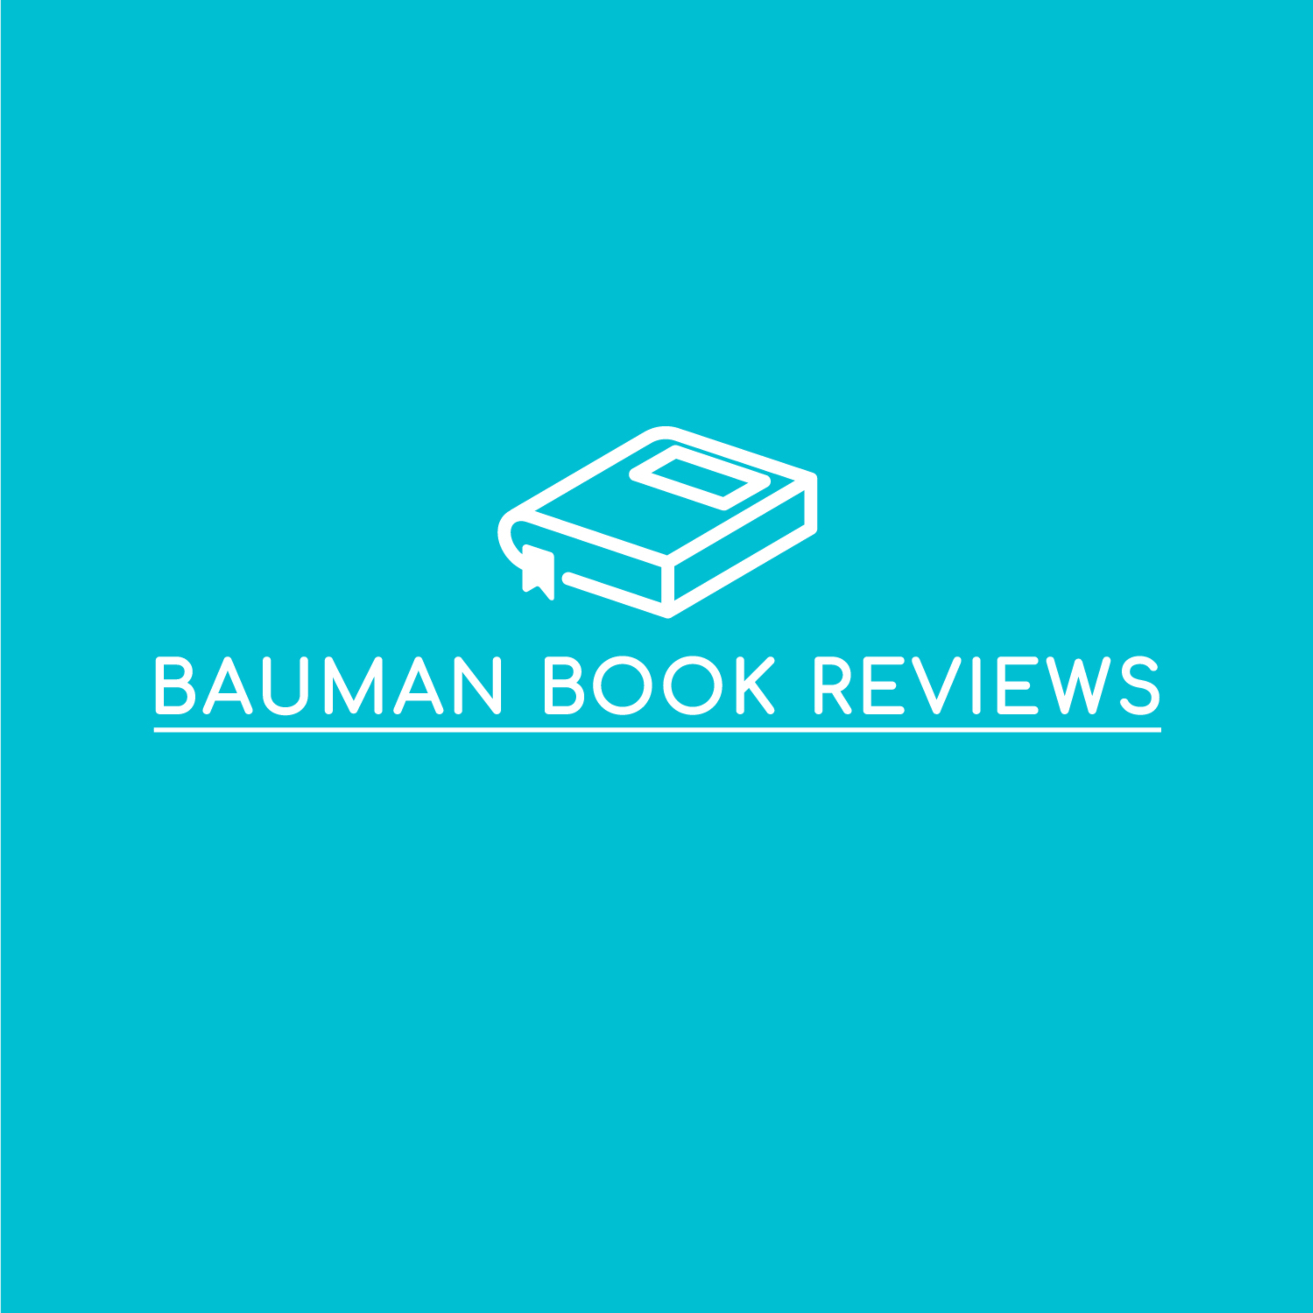 BAUMAN BOOK REVIEWS (1)